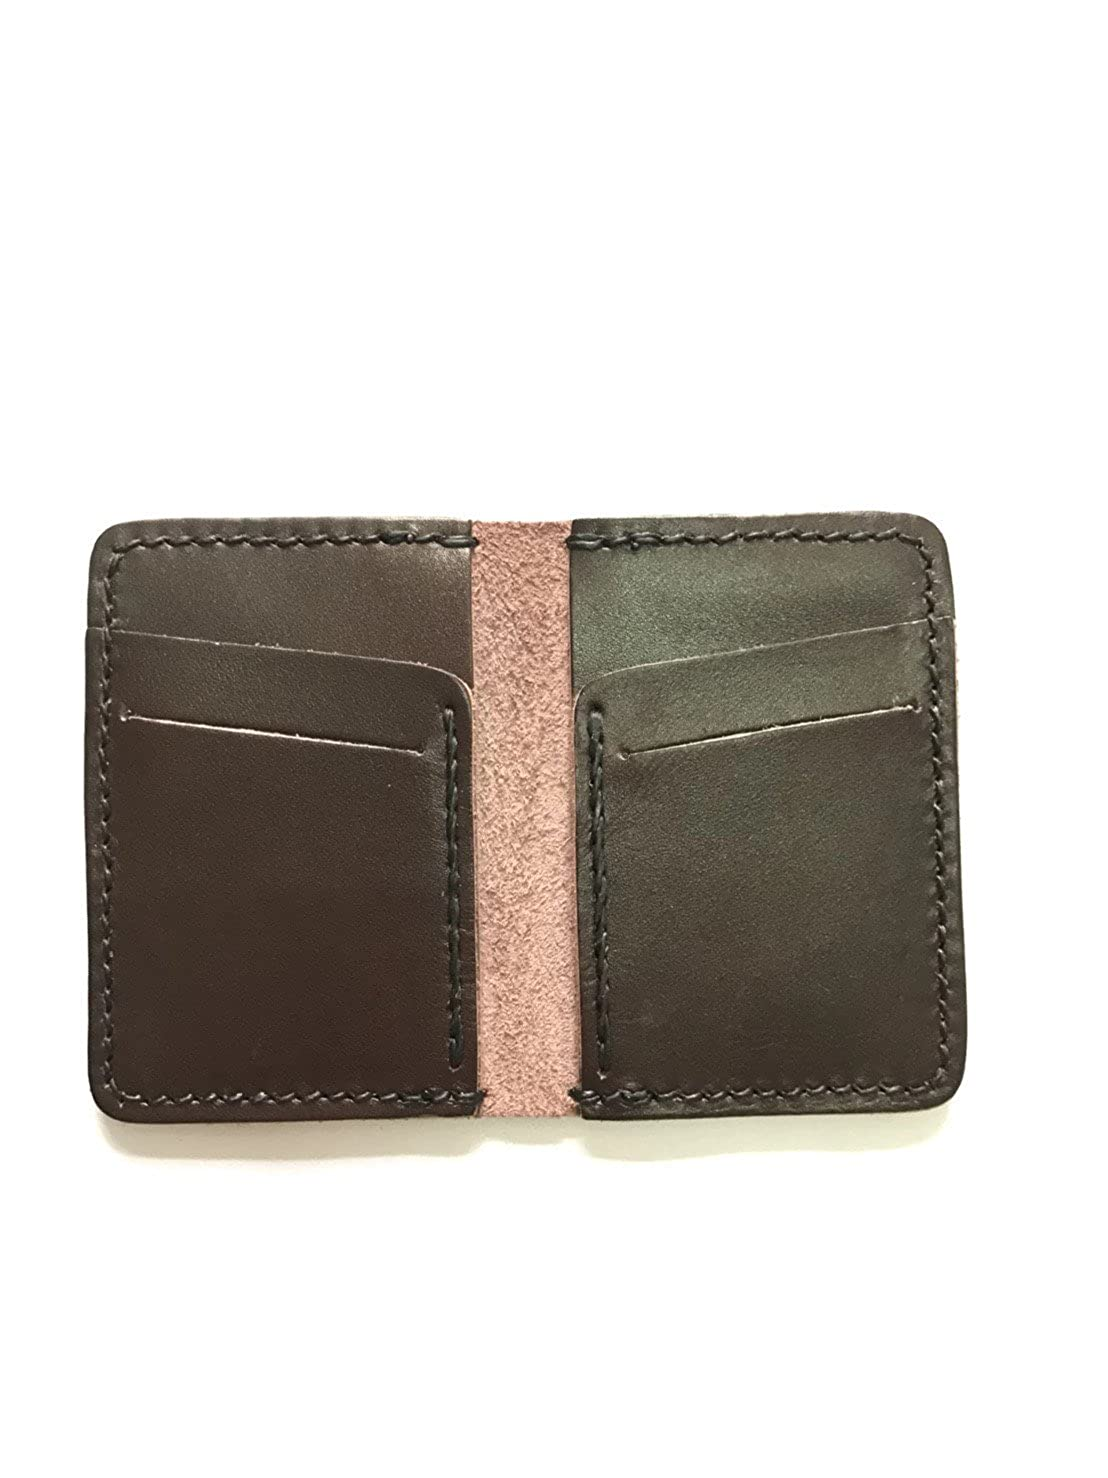 Wallet Leather Handmade, Front Pocket Slim Design, Minimalist Credit Card  Wallet, (dark